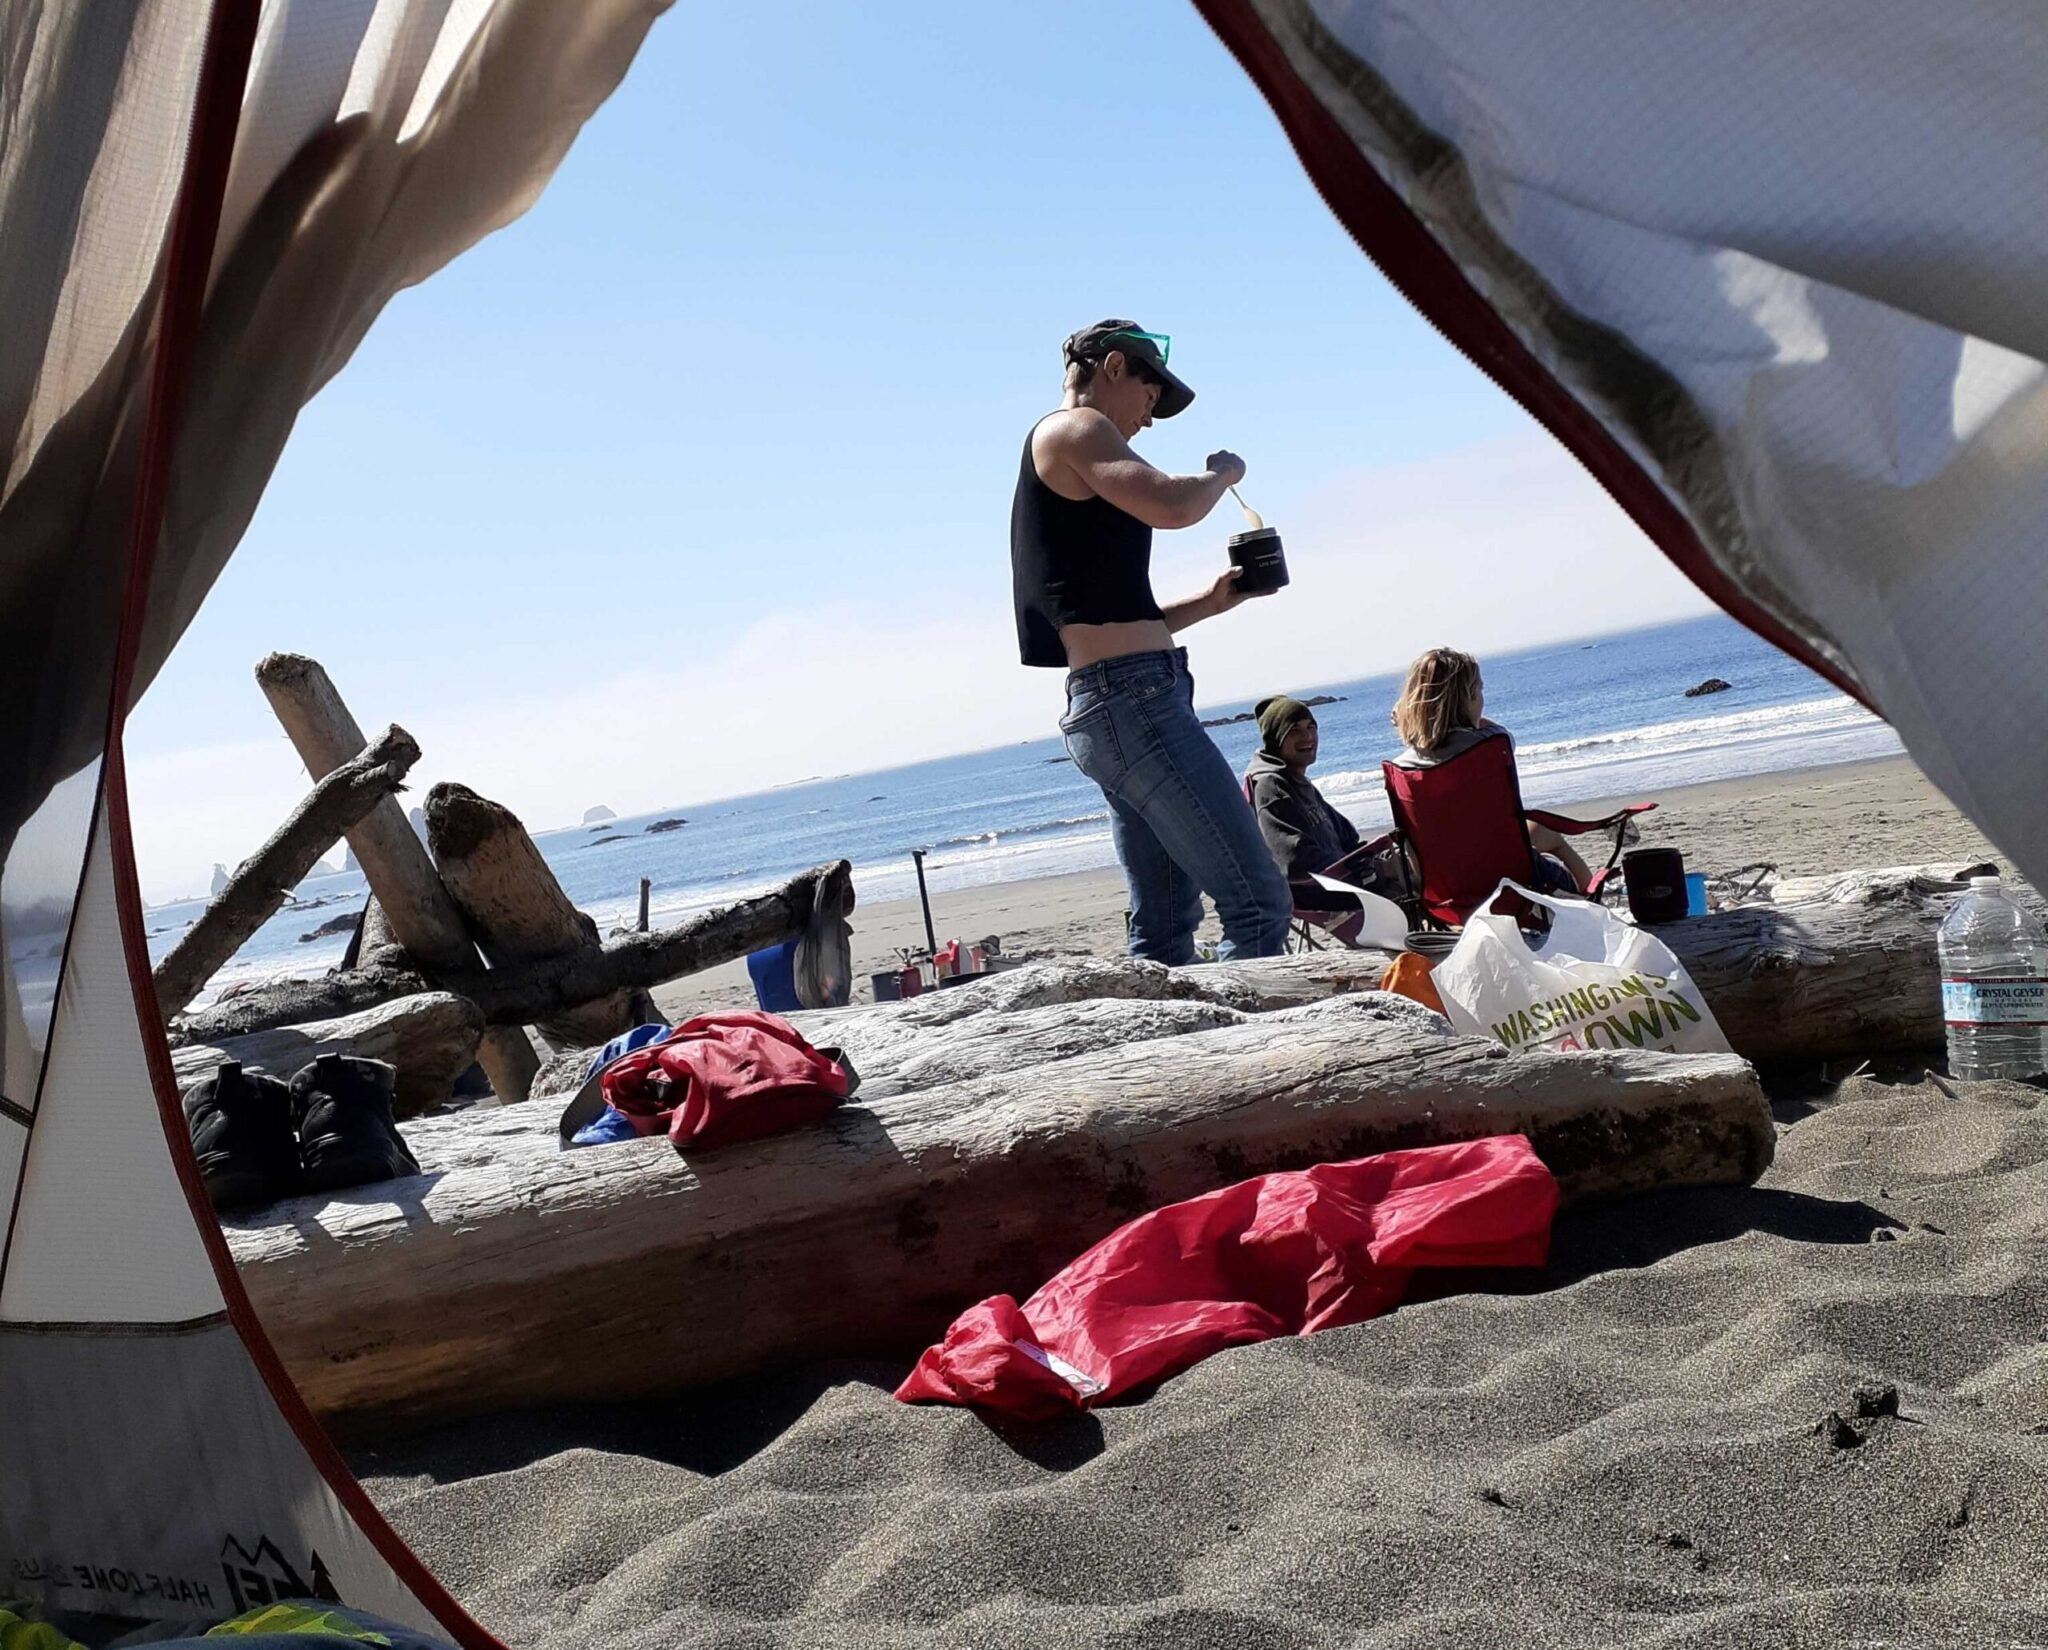 A family camping on the beach.